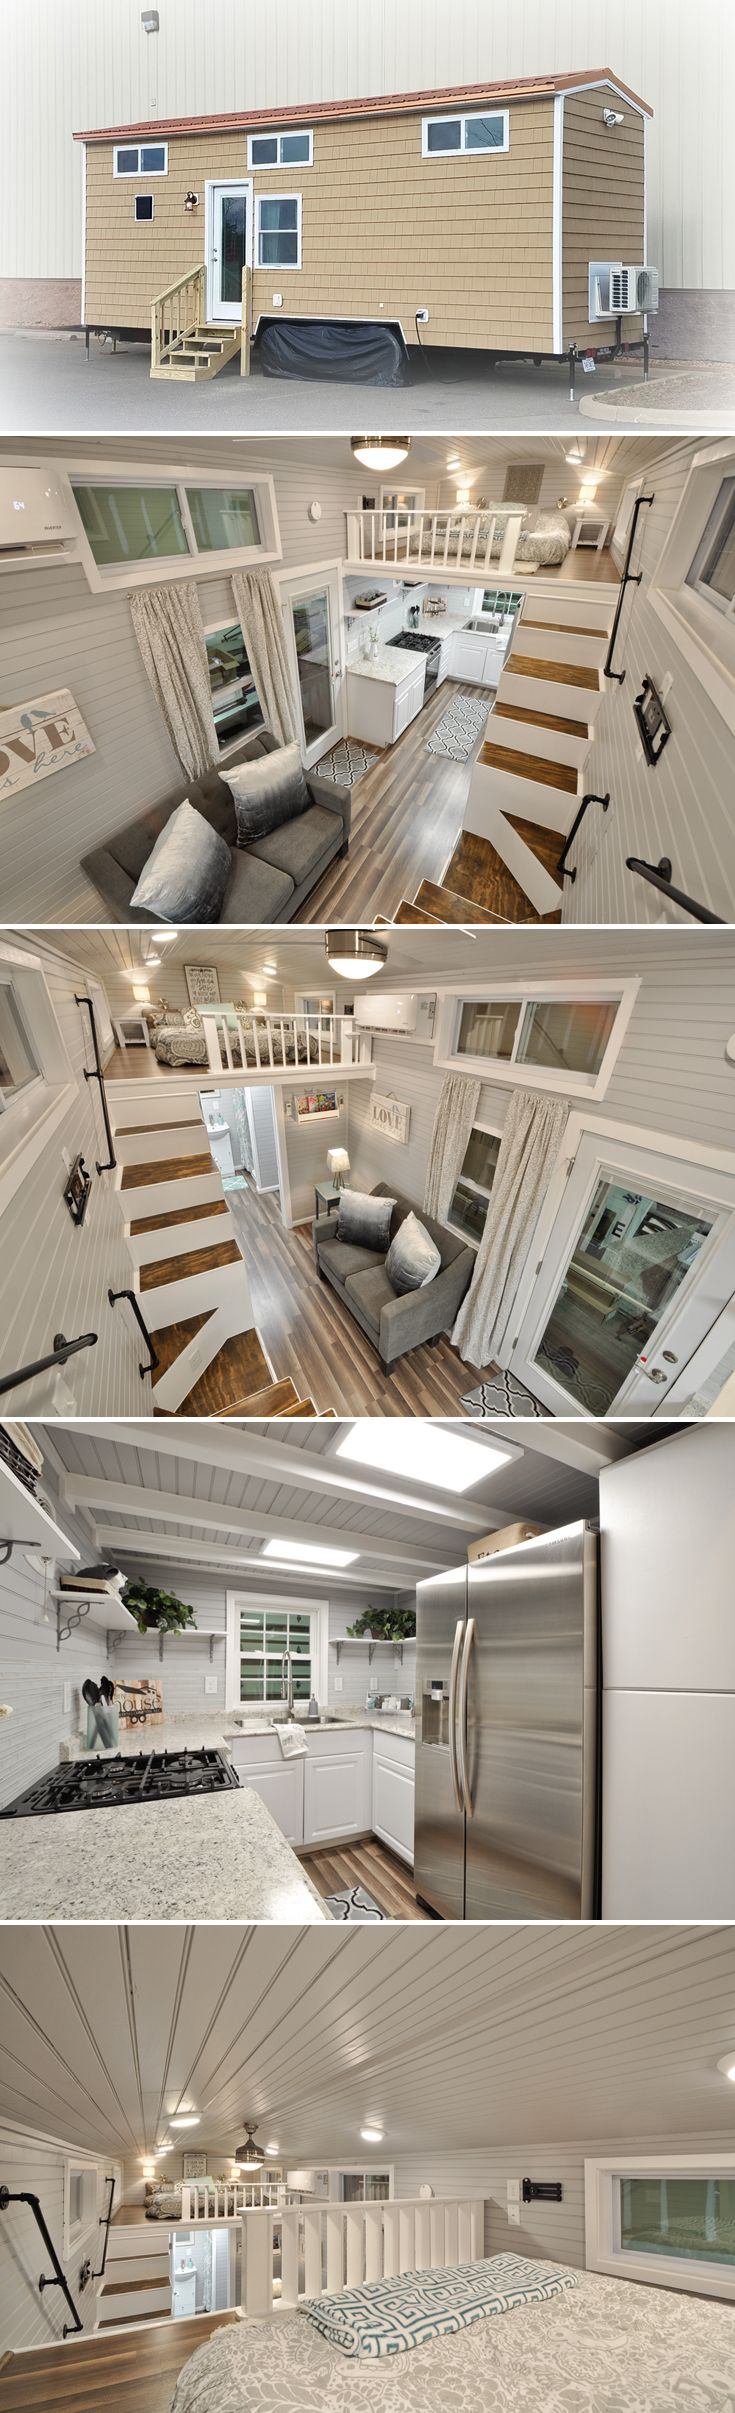 best 25 loft railing ideas on pinterest rustic cabin decor rails version and rebar house. Black Bedroom Furniture Sets. Home Design Ideas